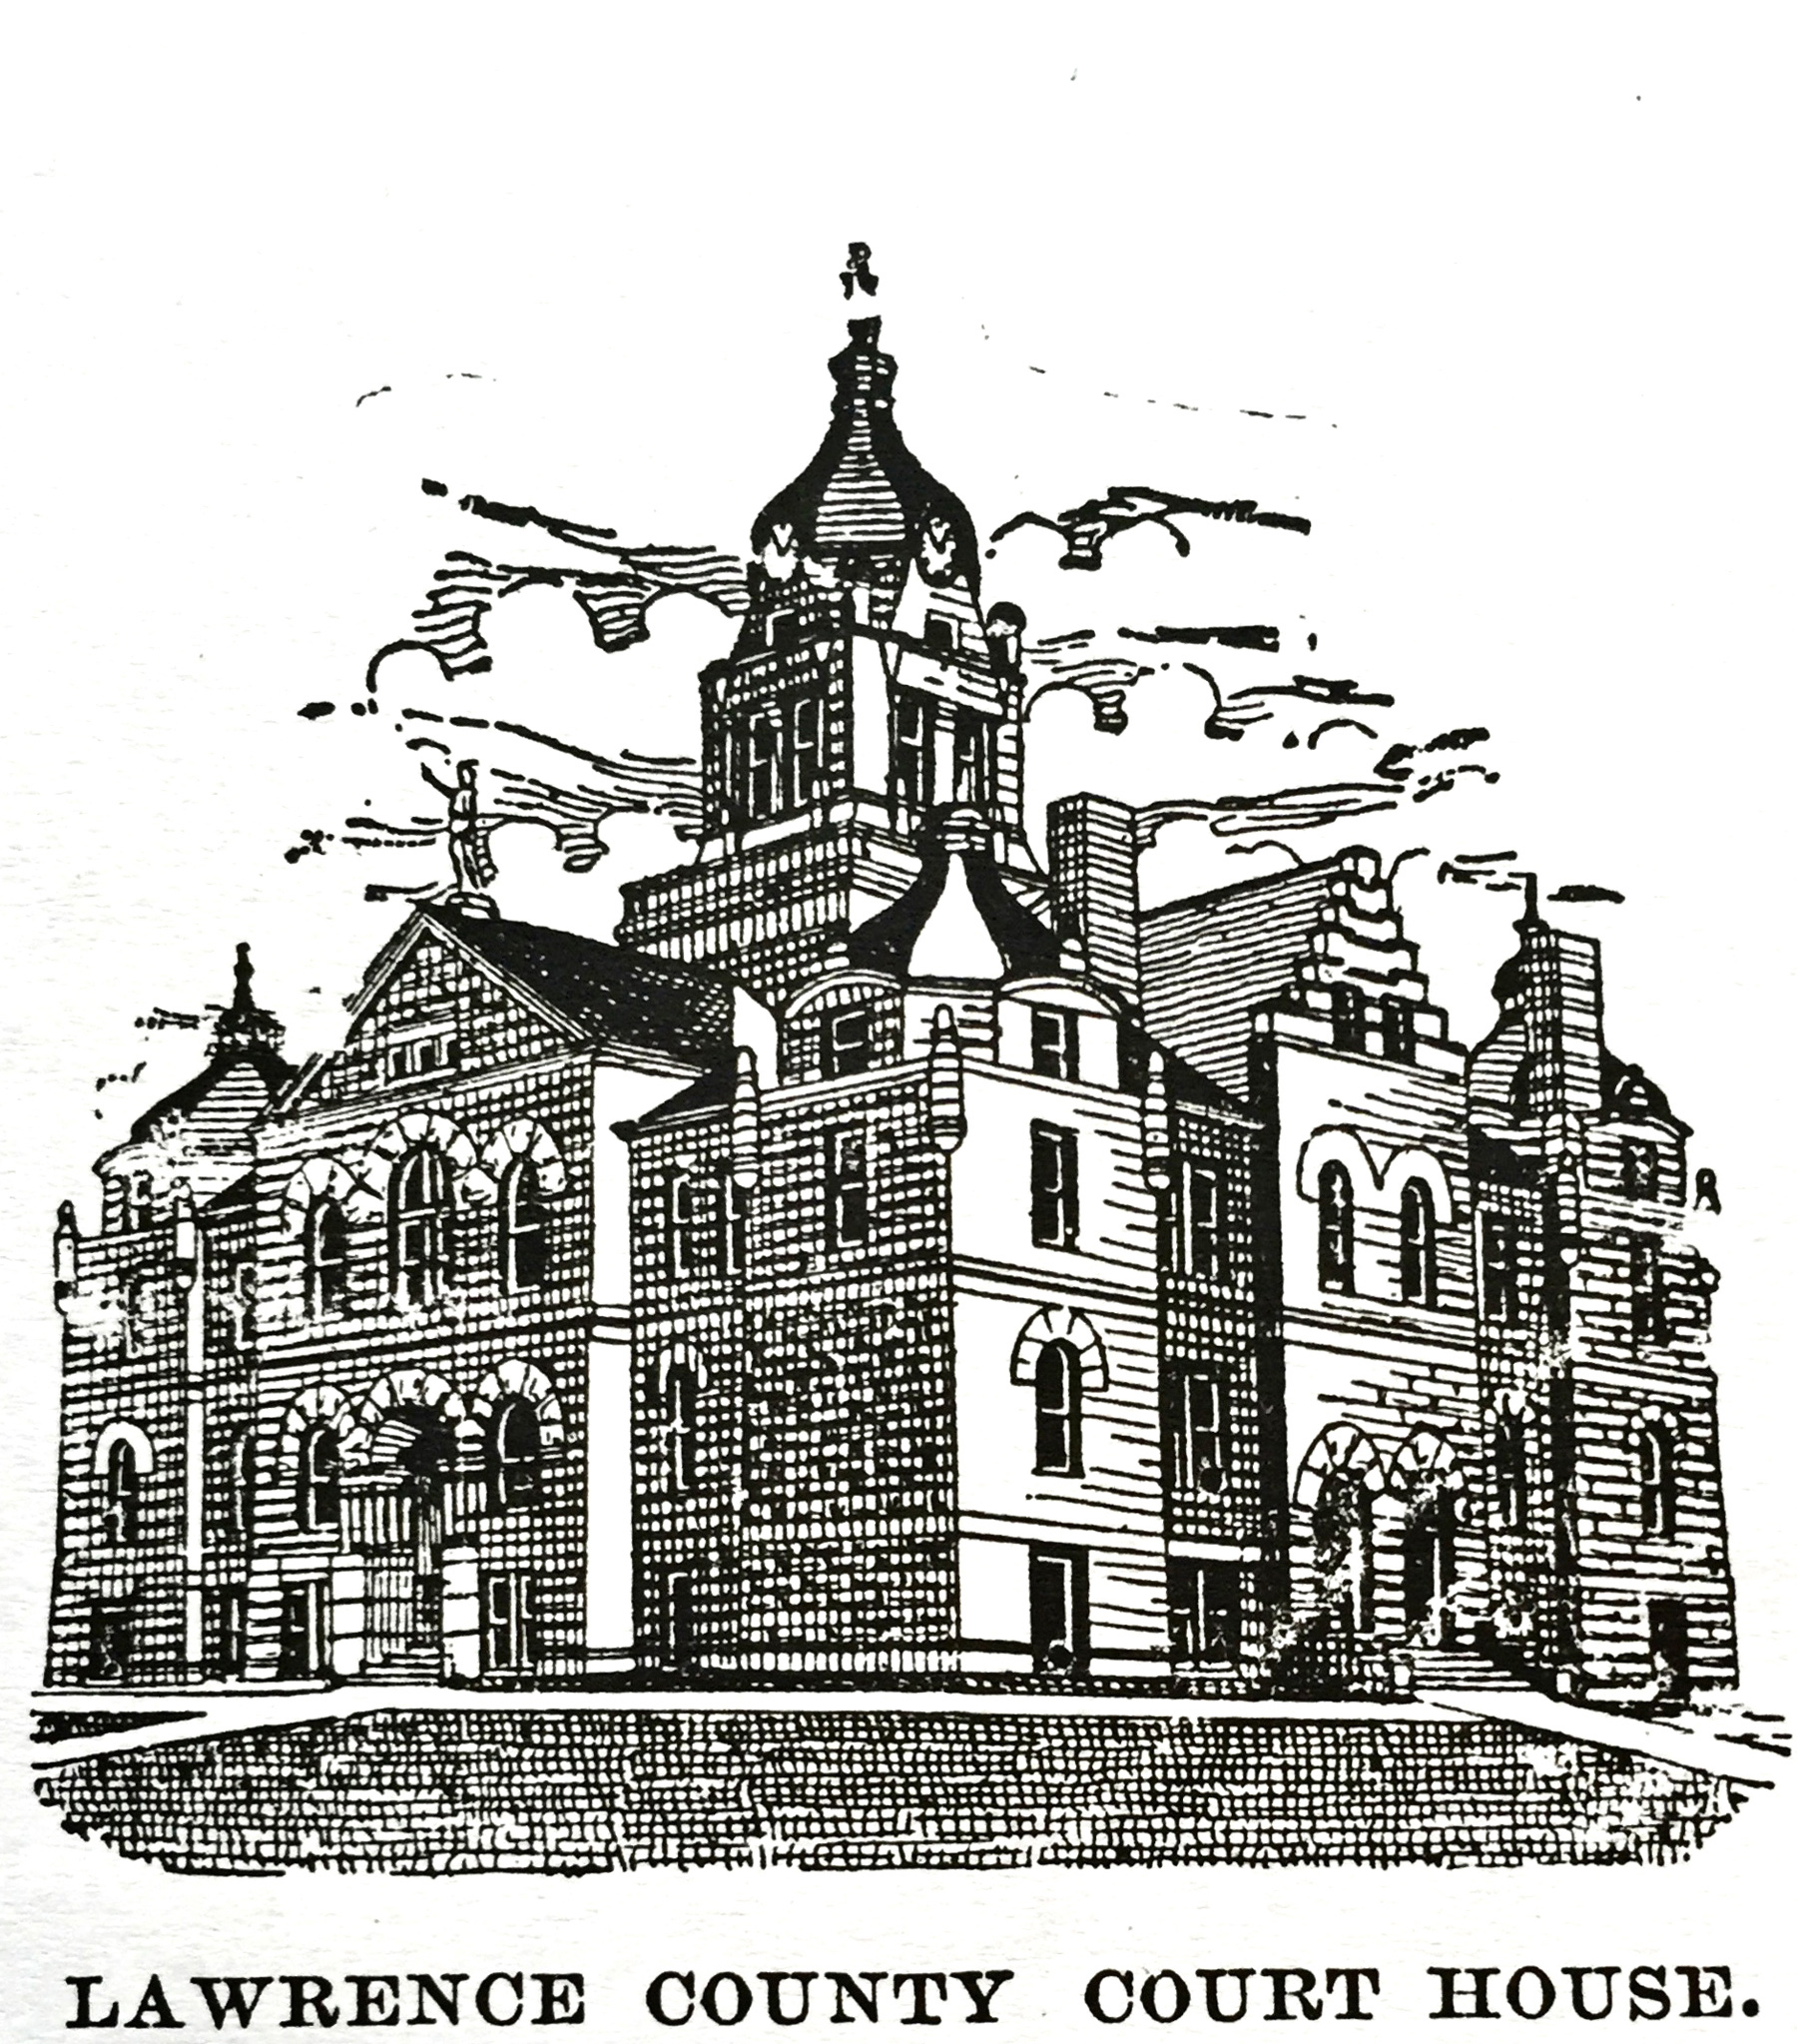 Lawrence County Courthouse sketch